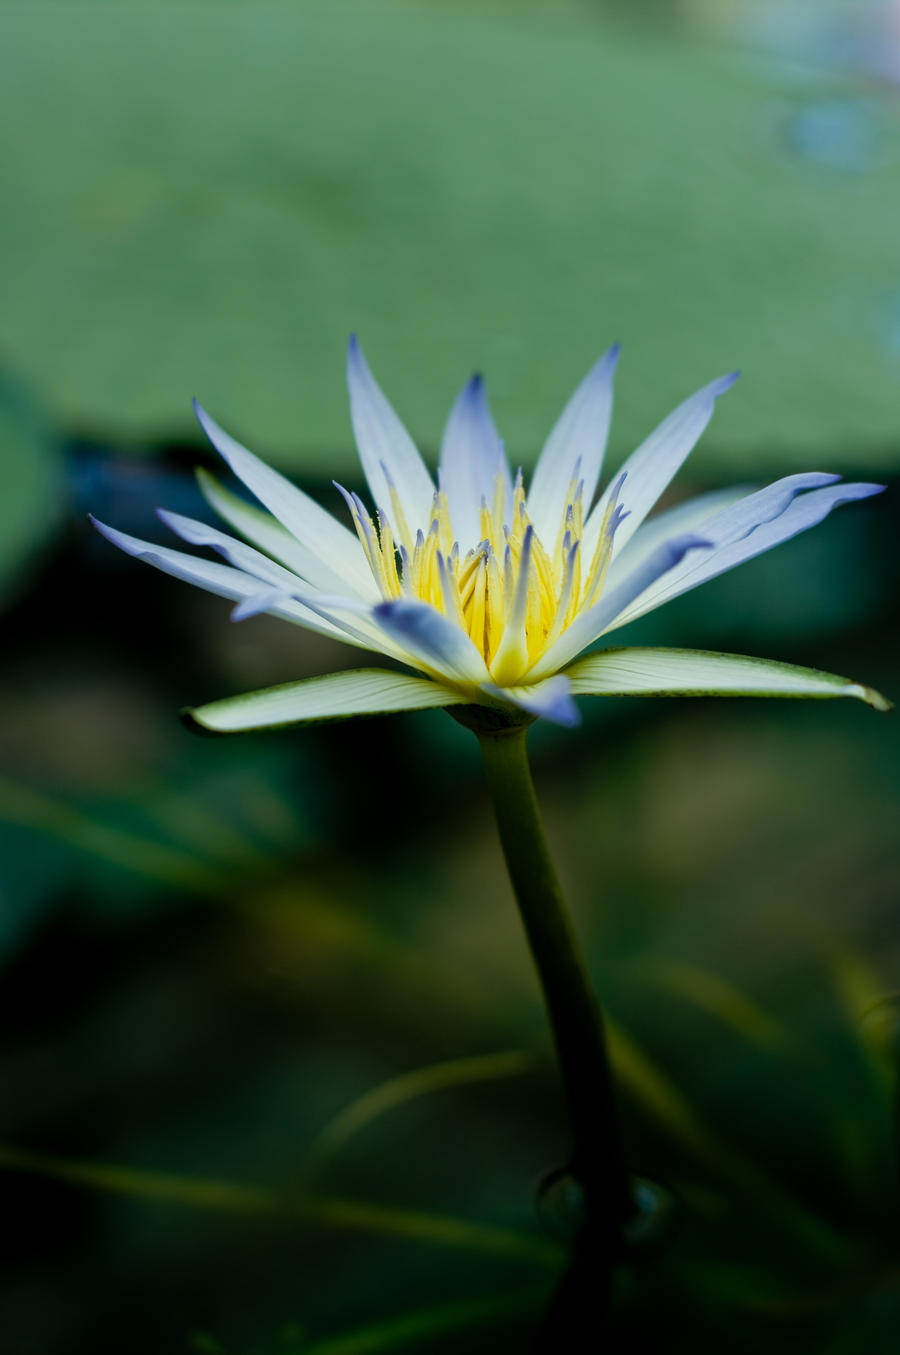 Blue Nile Lilly by MarkKenworthy